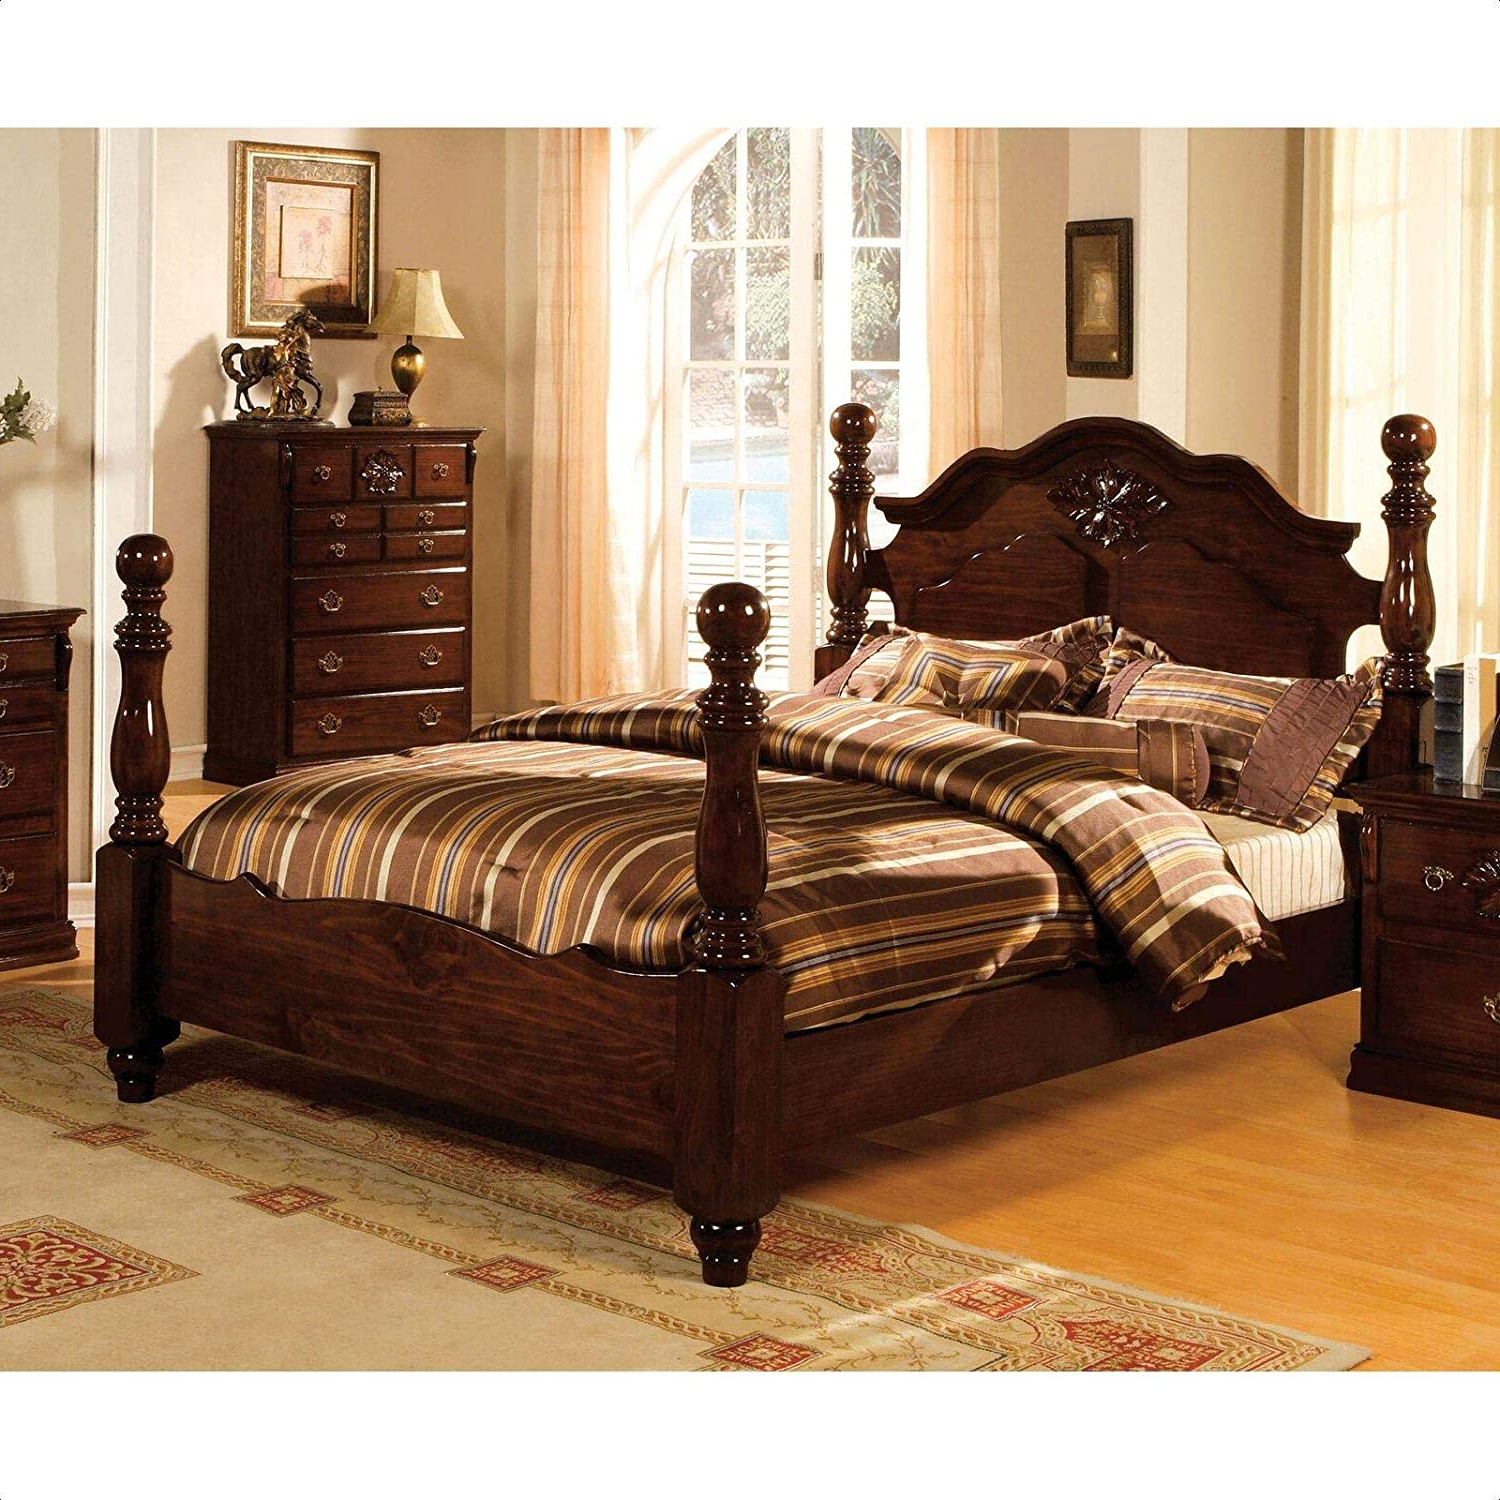 Fashionable Edyth Wood And Metal Wall Décor Intended For Amazon: Edyth Low Profile Four Poster Bed: Kitchen & Dining (View 16 of 20)